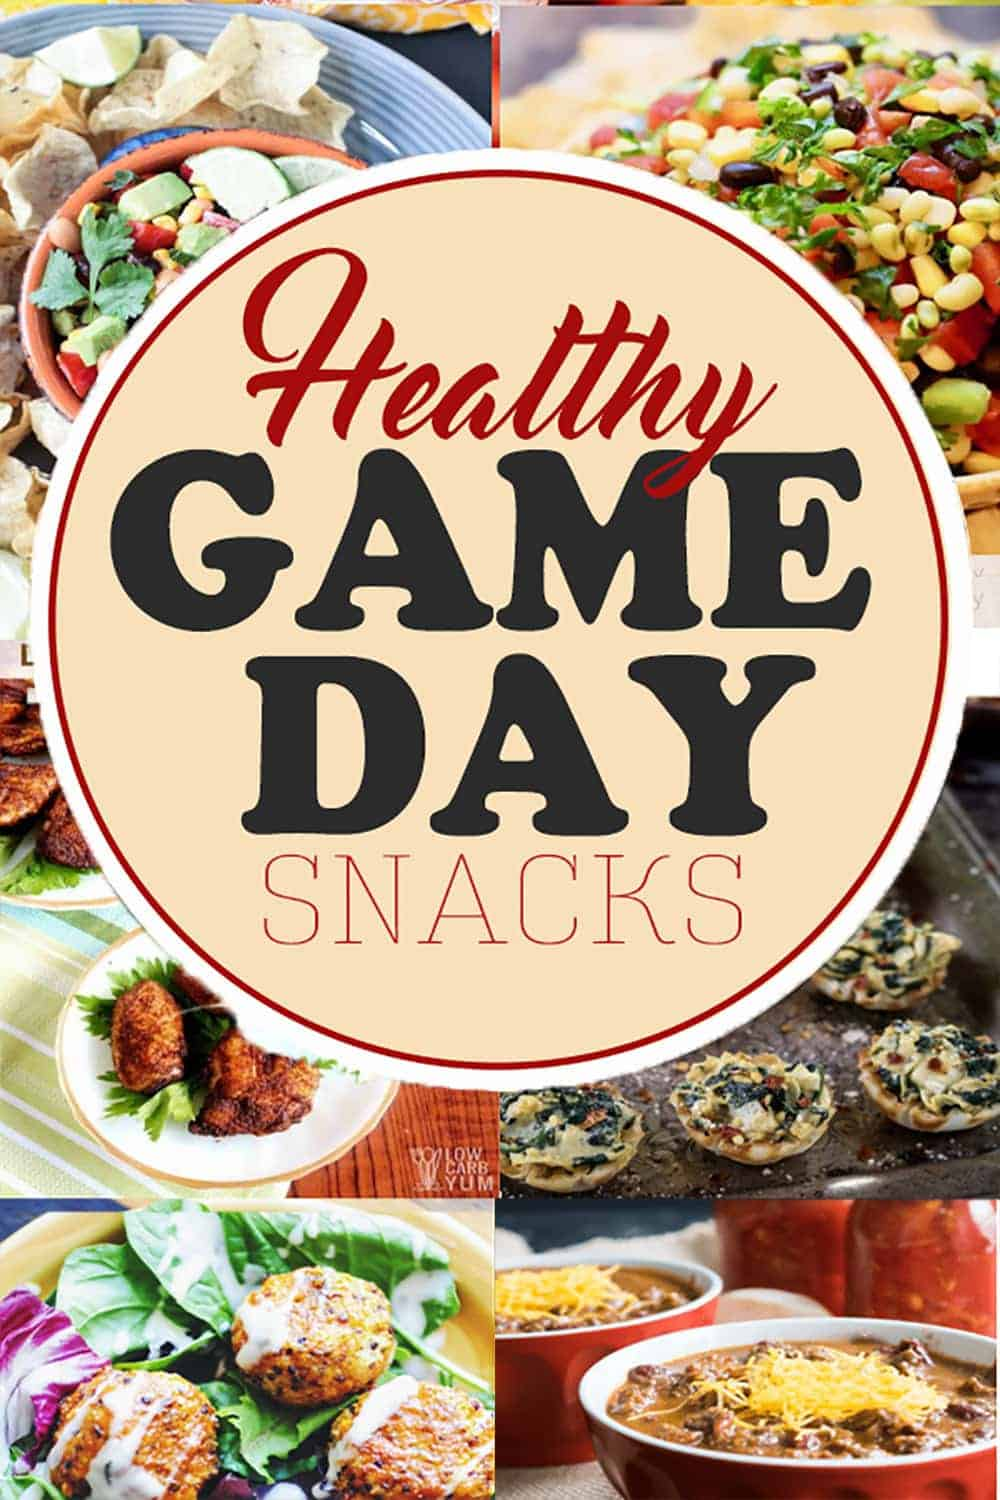 Healthy Game Day Snacks and round up of images including wings and bean dip.